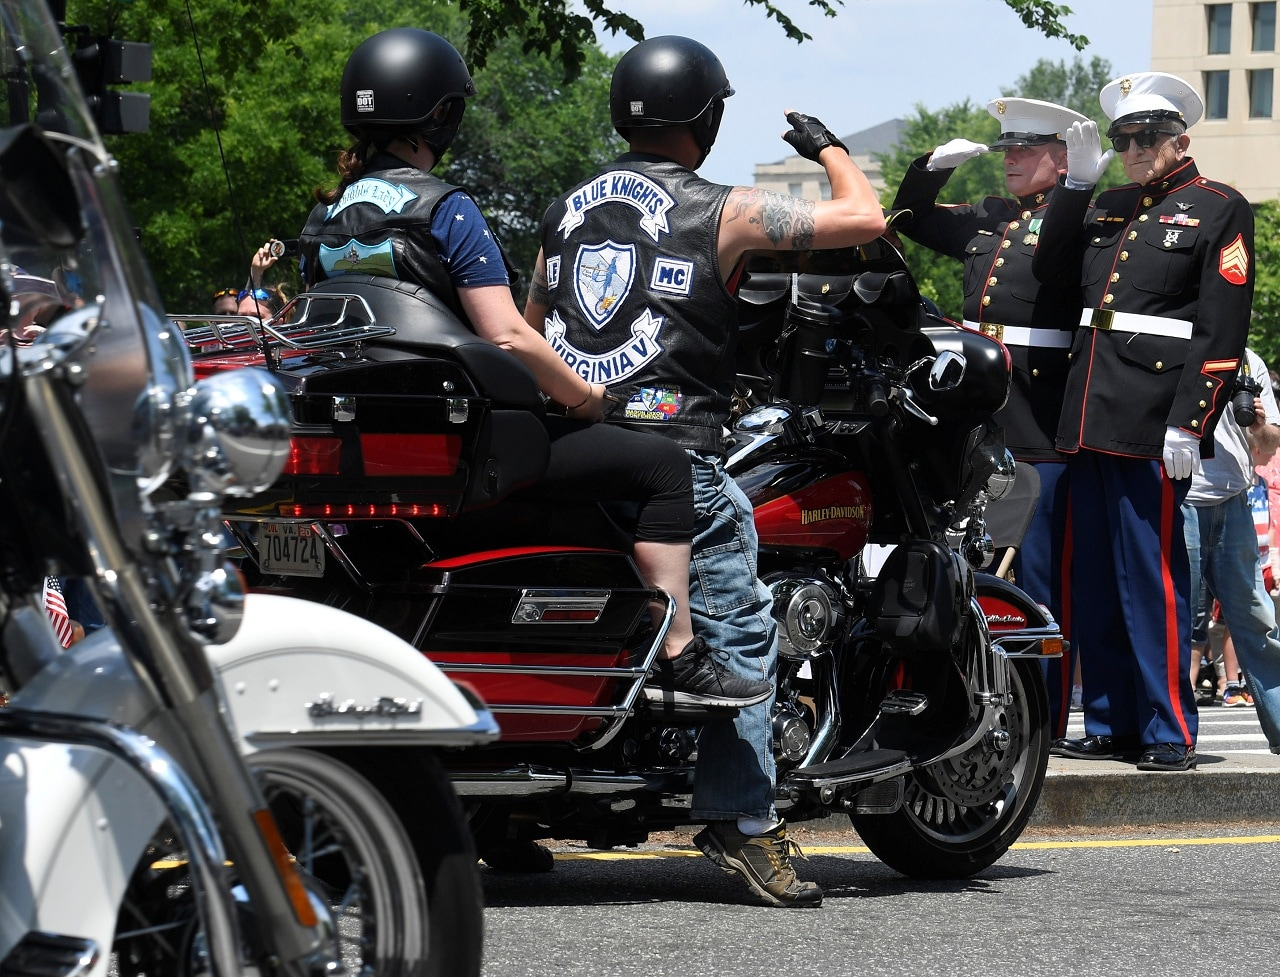 A motorcycle rider stops to salute USMC Staff Sgt. Tim Chambers (ret.), and USMC Sgt. Bruce Heilman (ret.), 93, of Richmiond, Virginia, during the 32nd Annual, and possibly final, Rolling Thunder